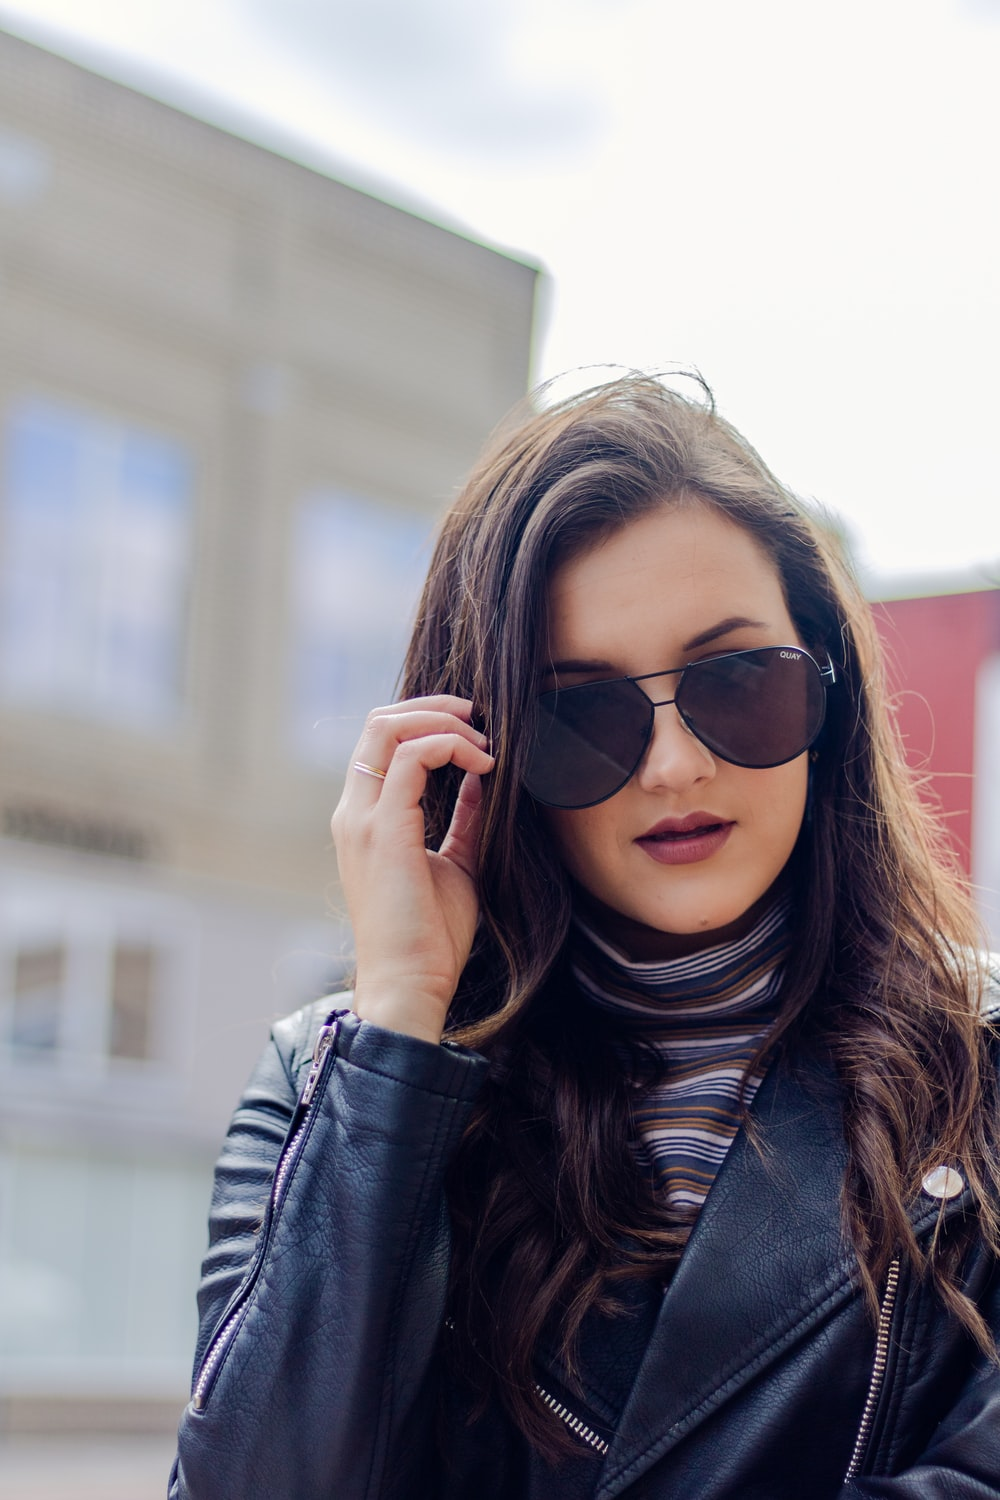 woman holding sunglasses